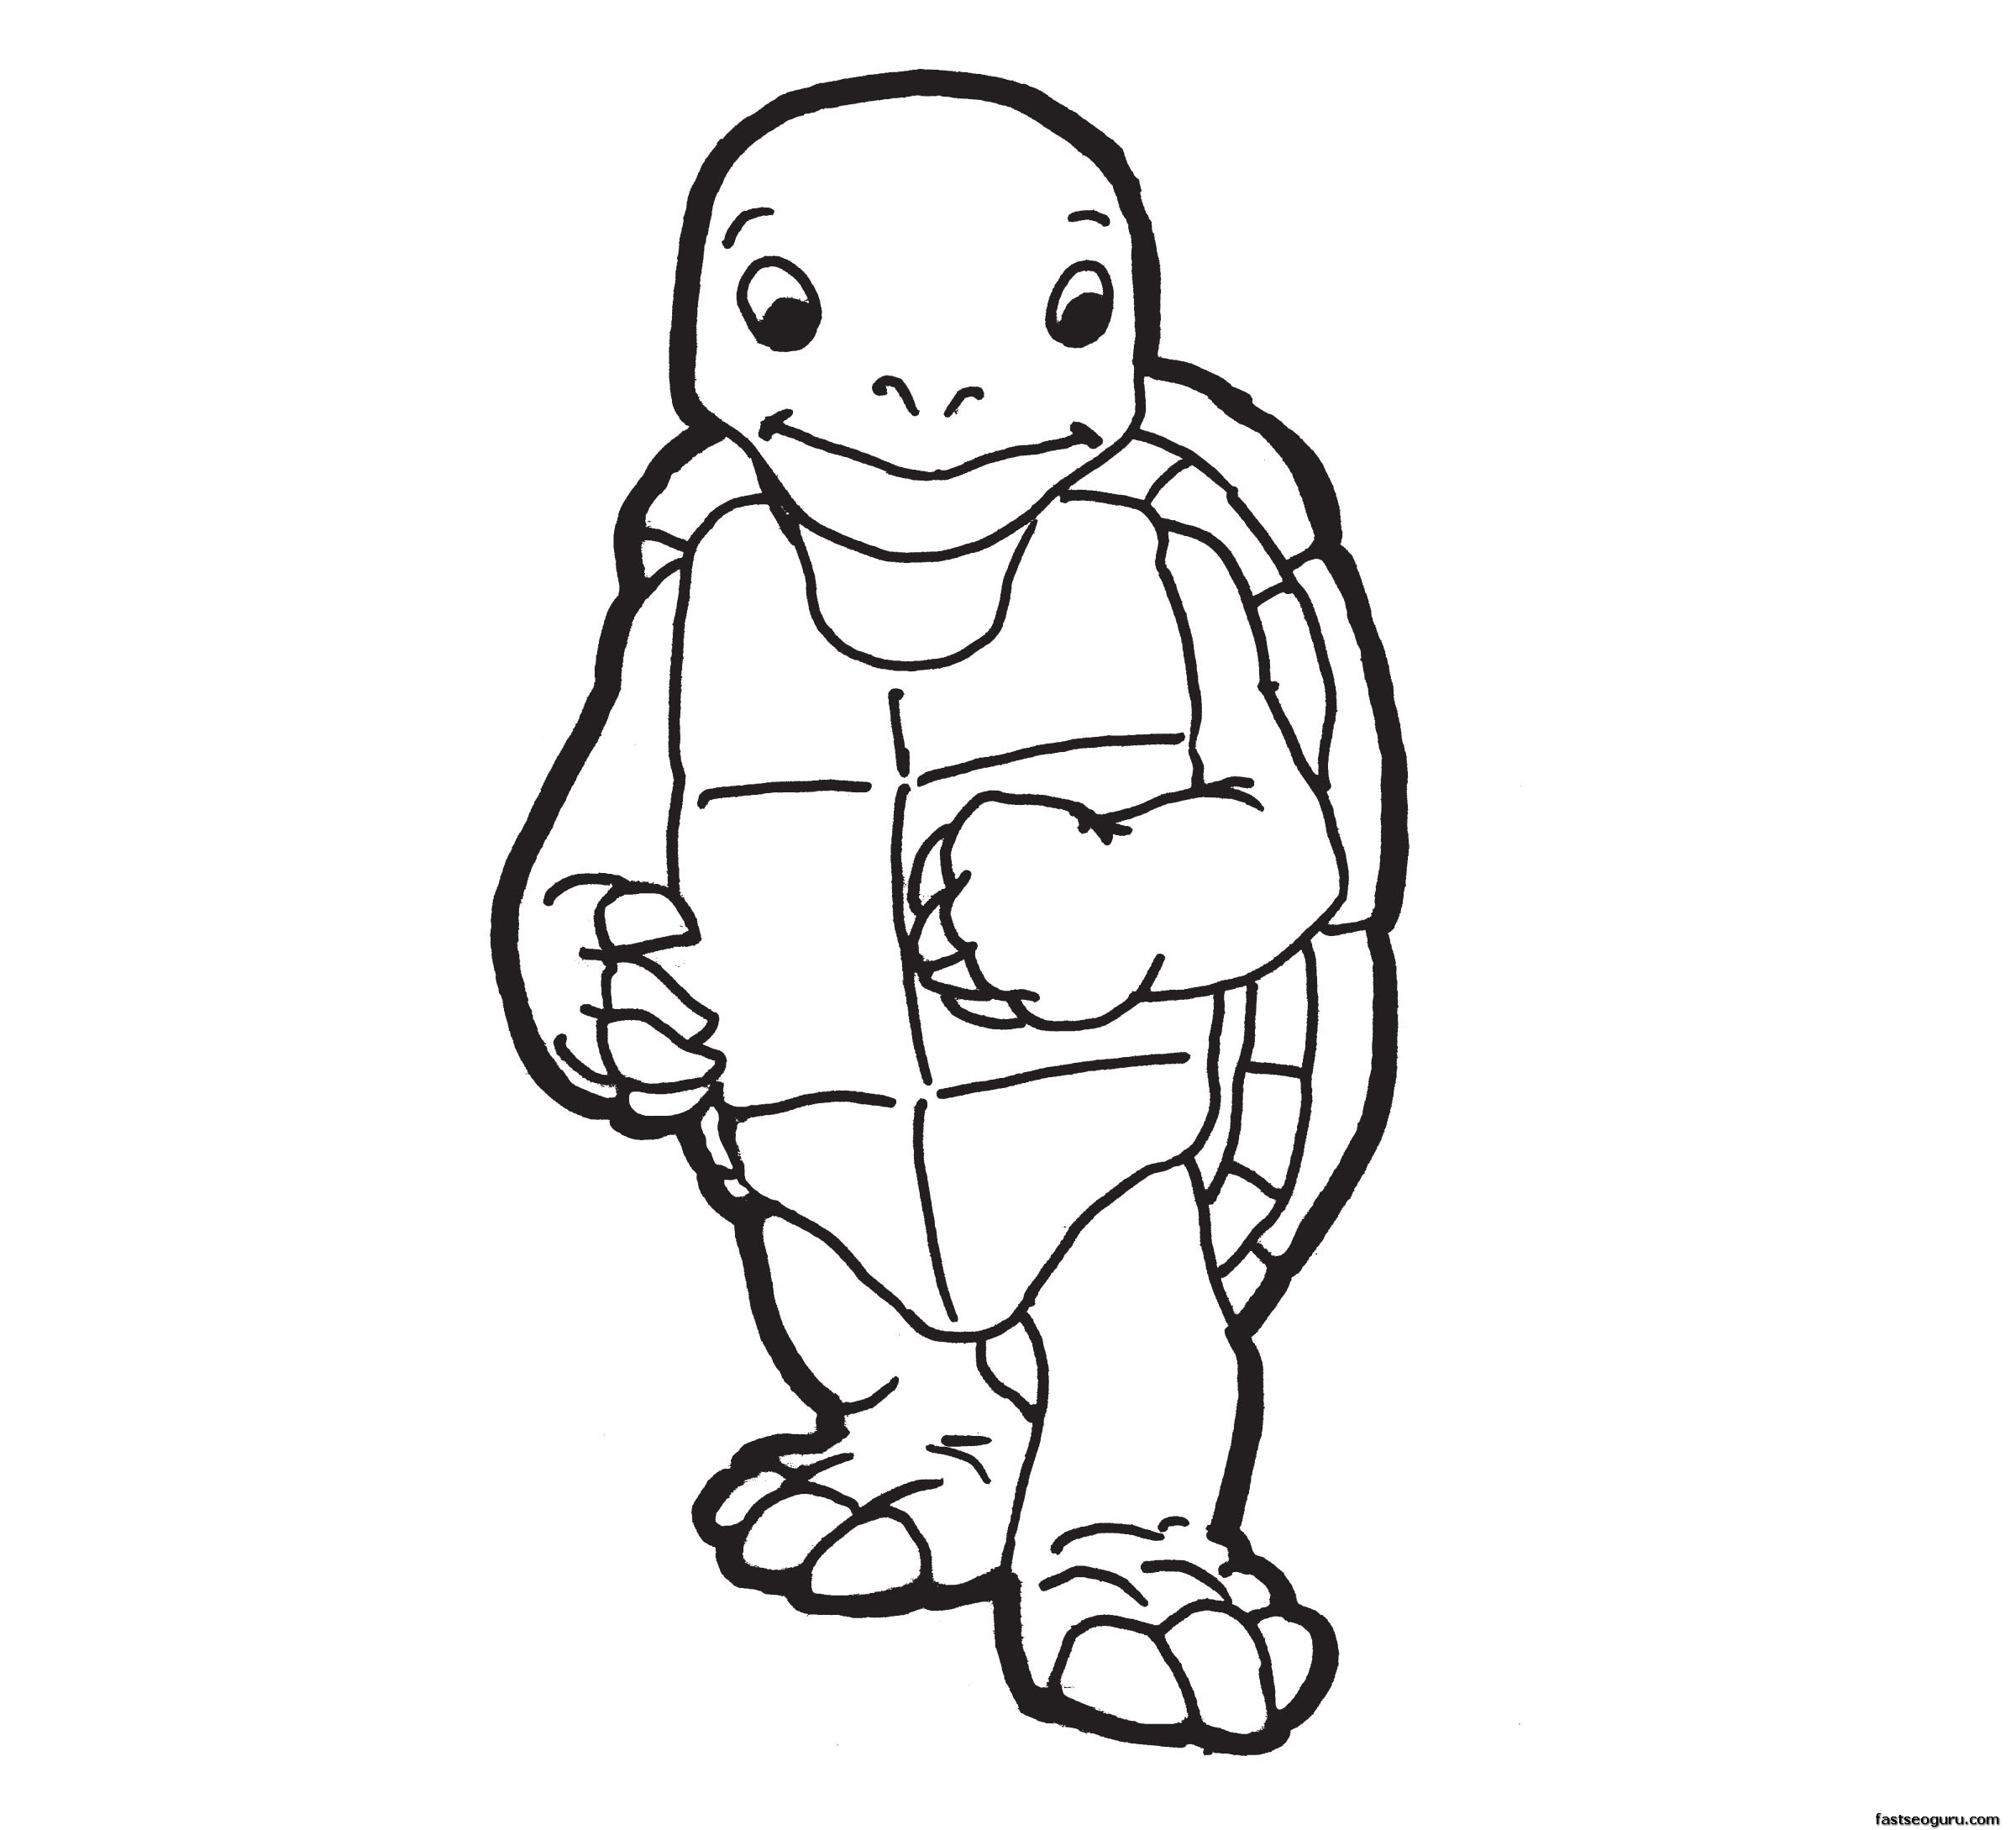 Printable sea animal Turtle coloring